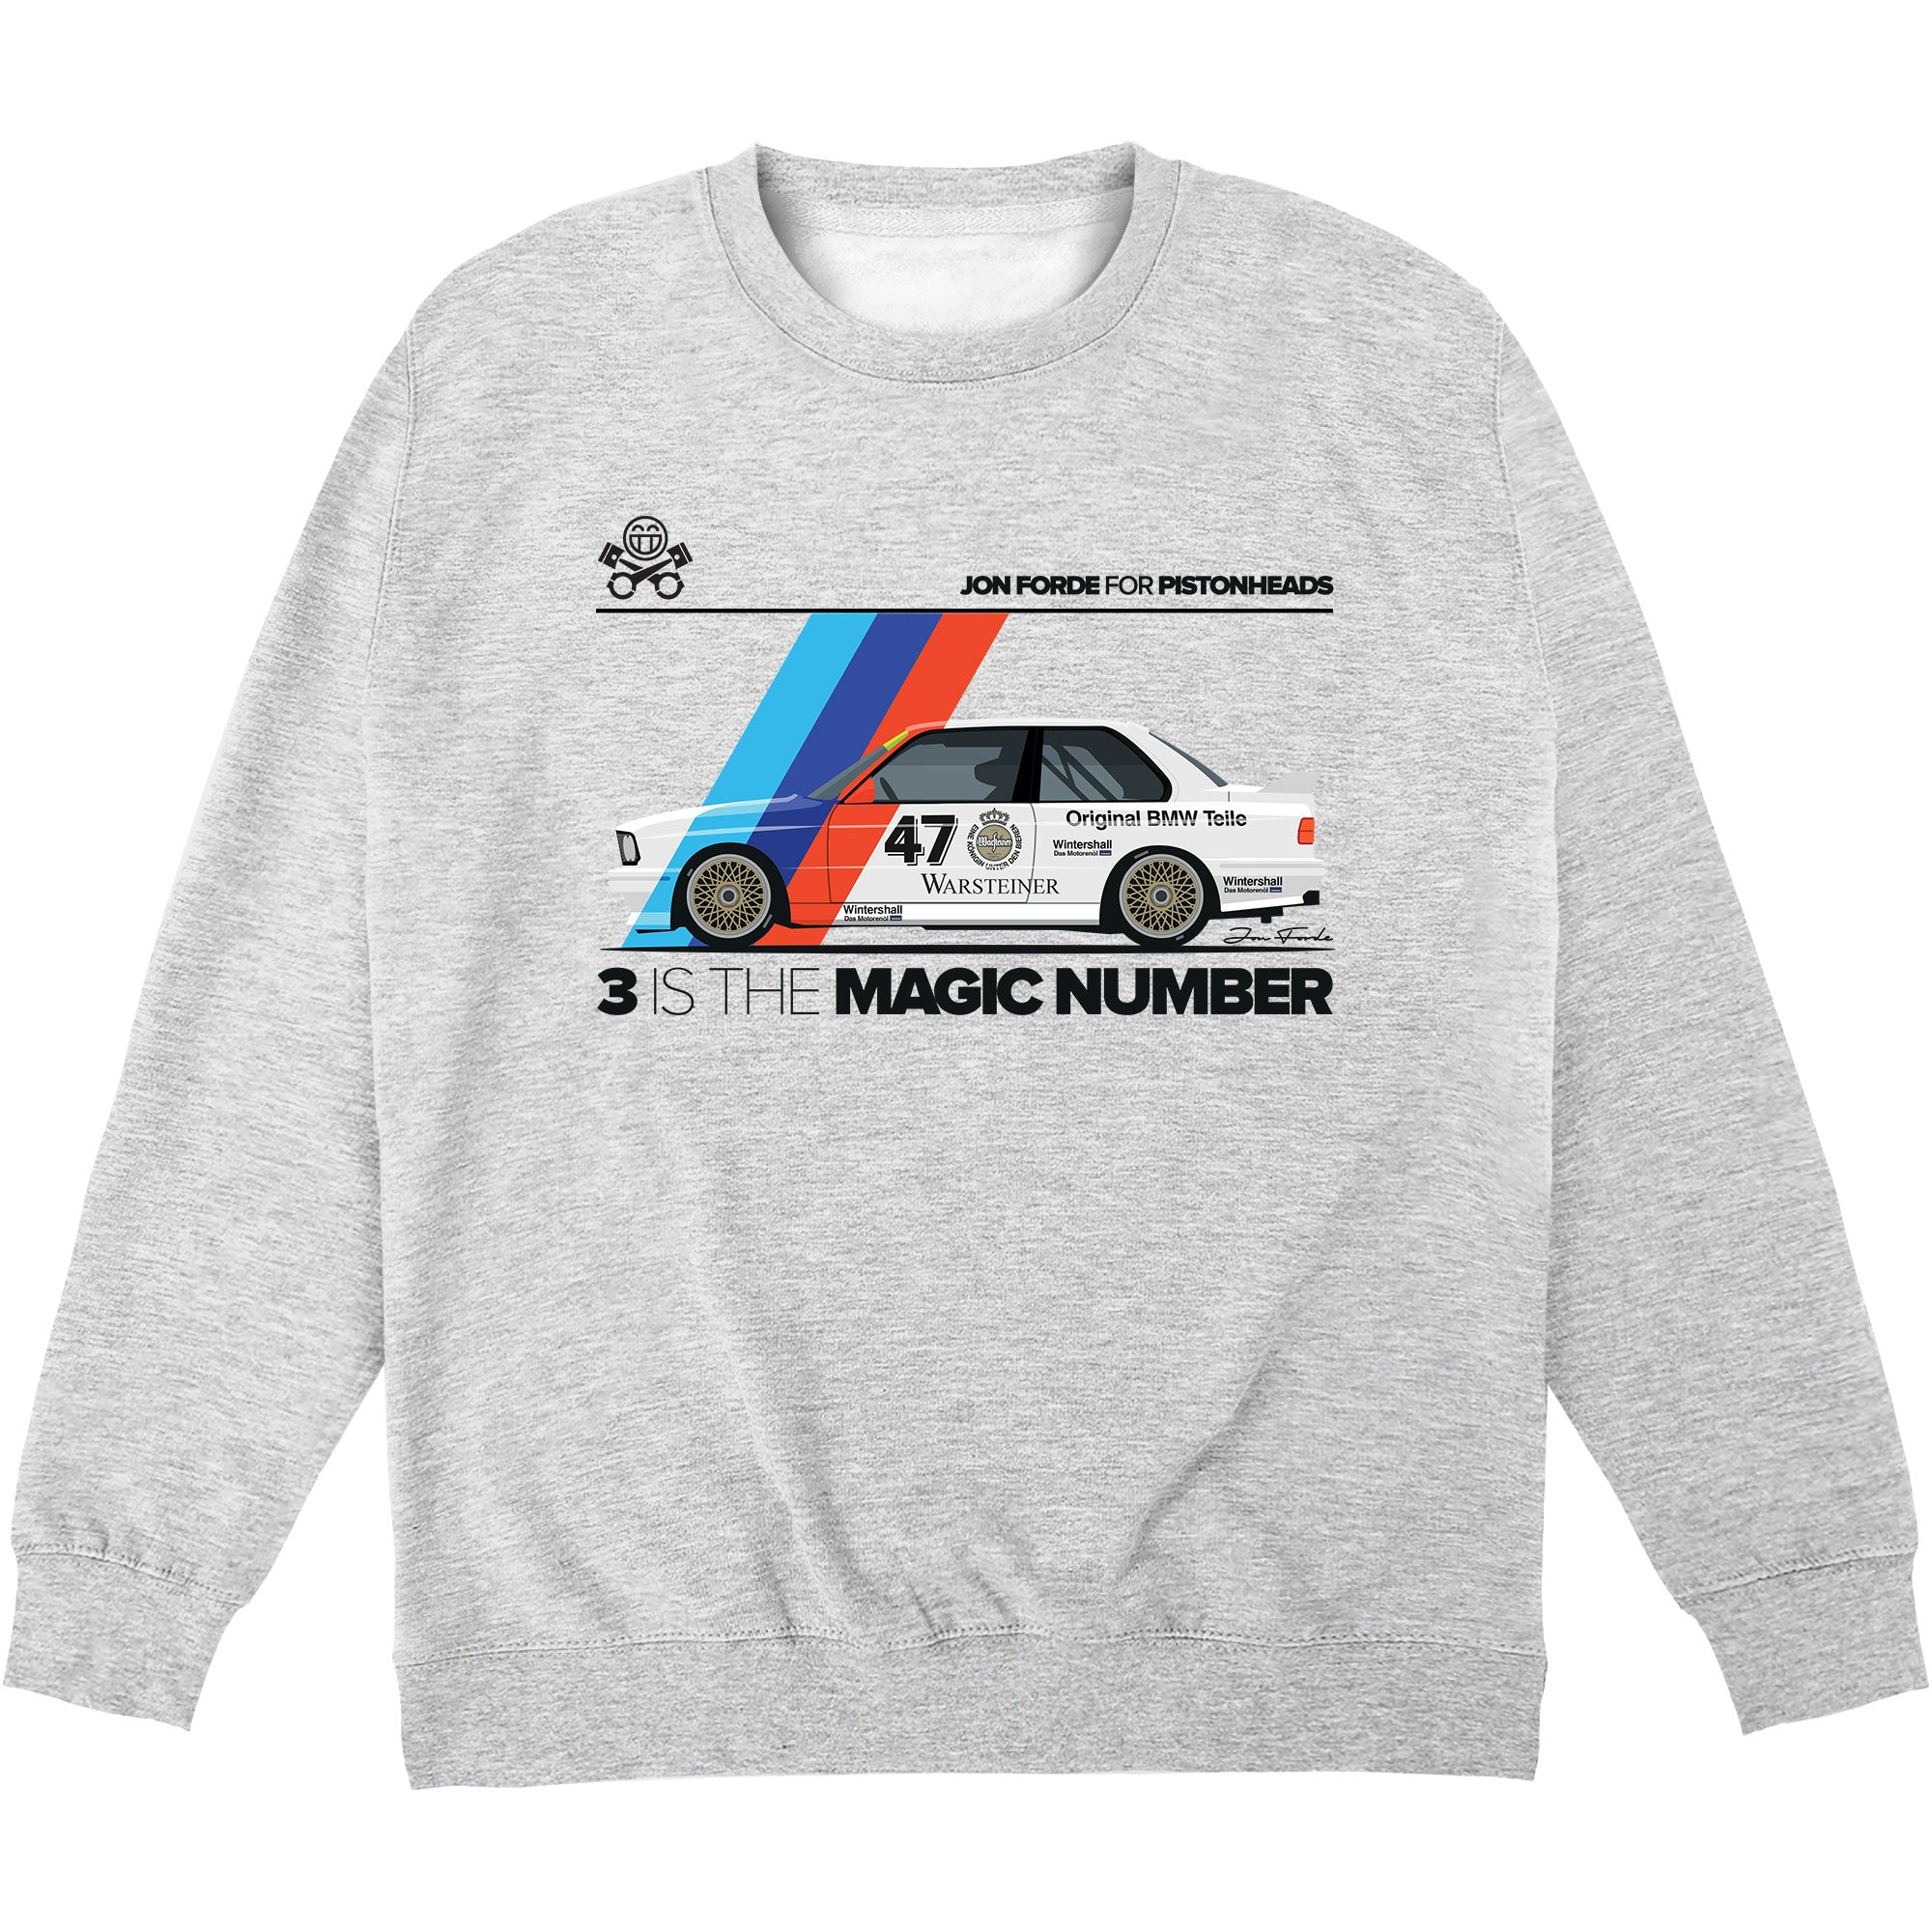 CHEAP Jon Forde 3 Is The Magic Number Sweatshirt 24322676983 – Clothing Accessories